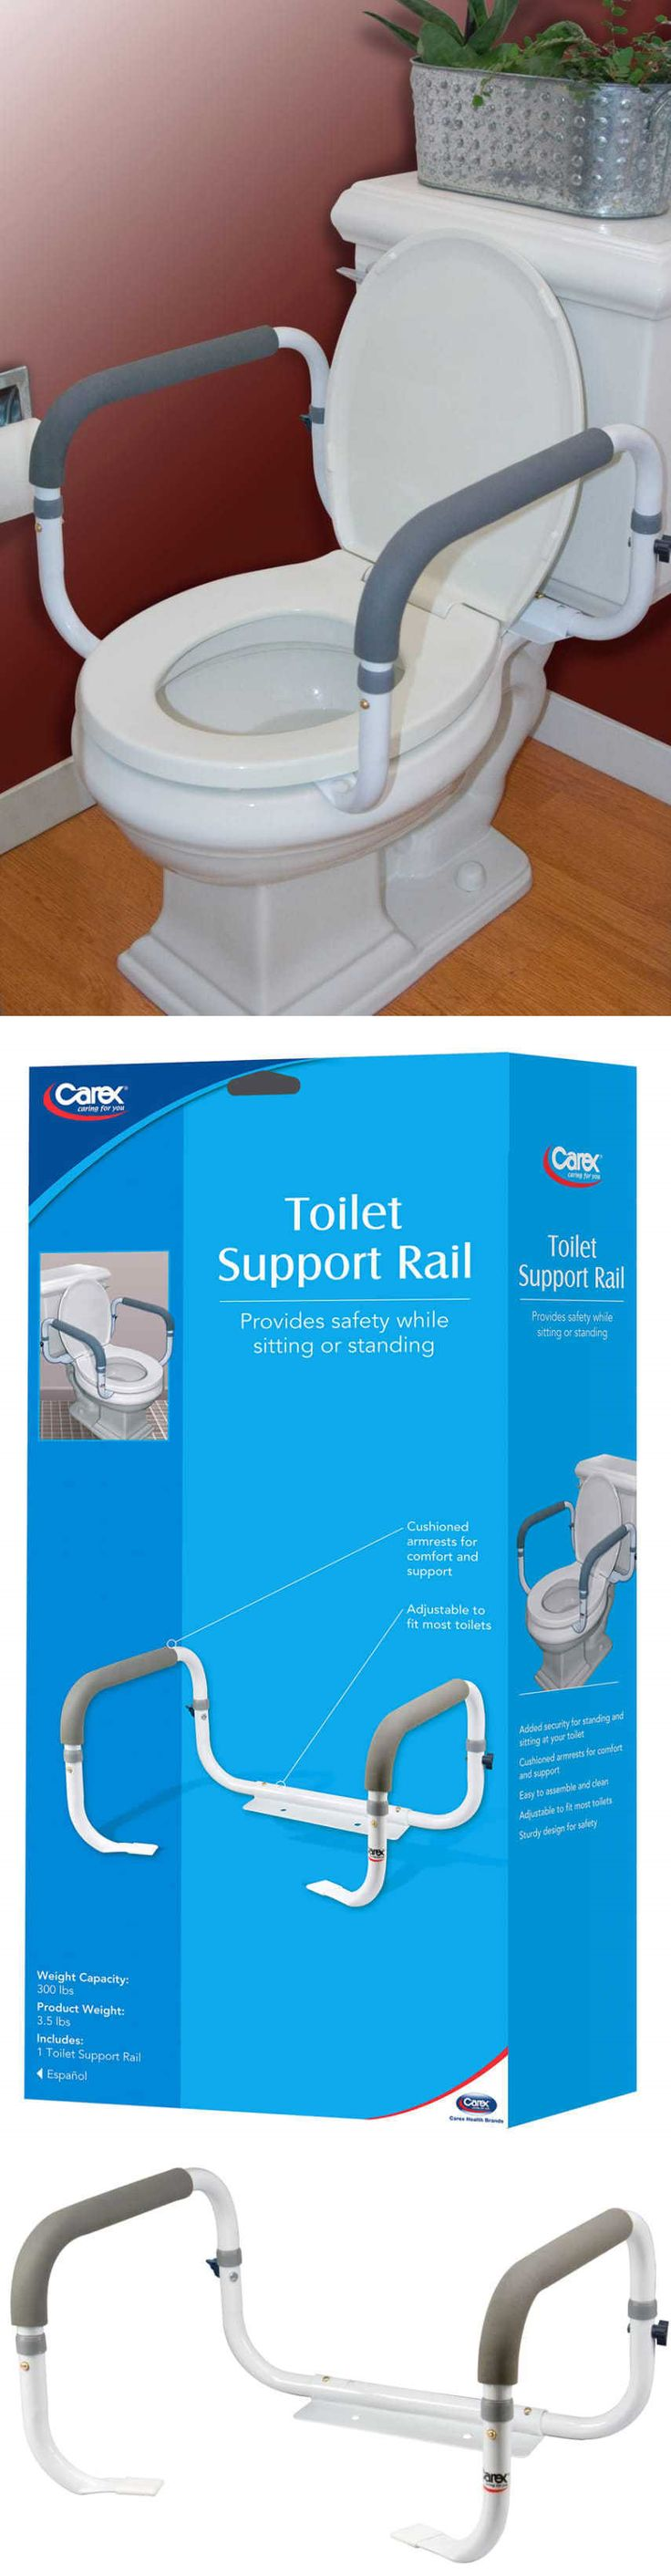 Handles and Rails: Toilet Safety Frame Rail Bathroom Grab Bars Seat Medical Support Handicap Arms BUY IT NOW ONLY: $30.97